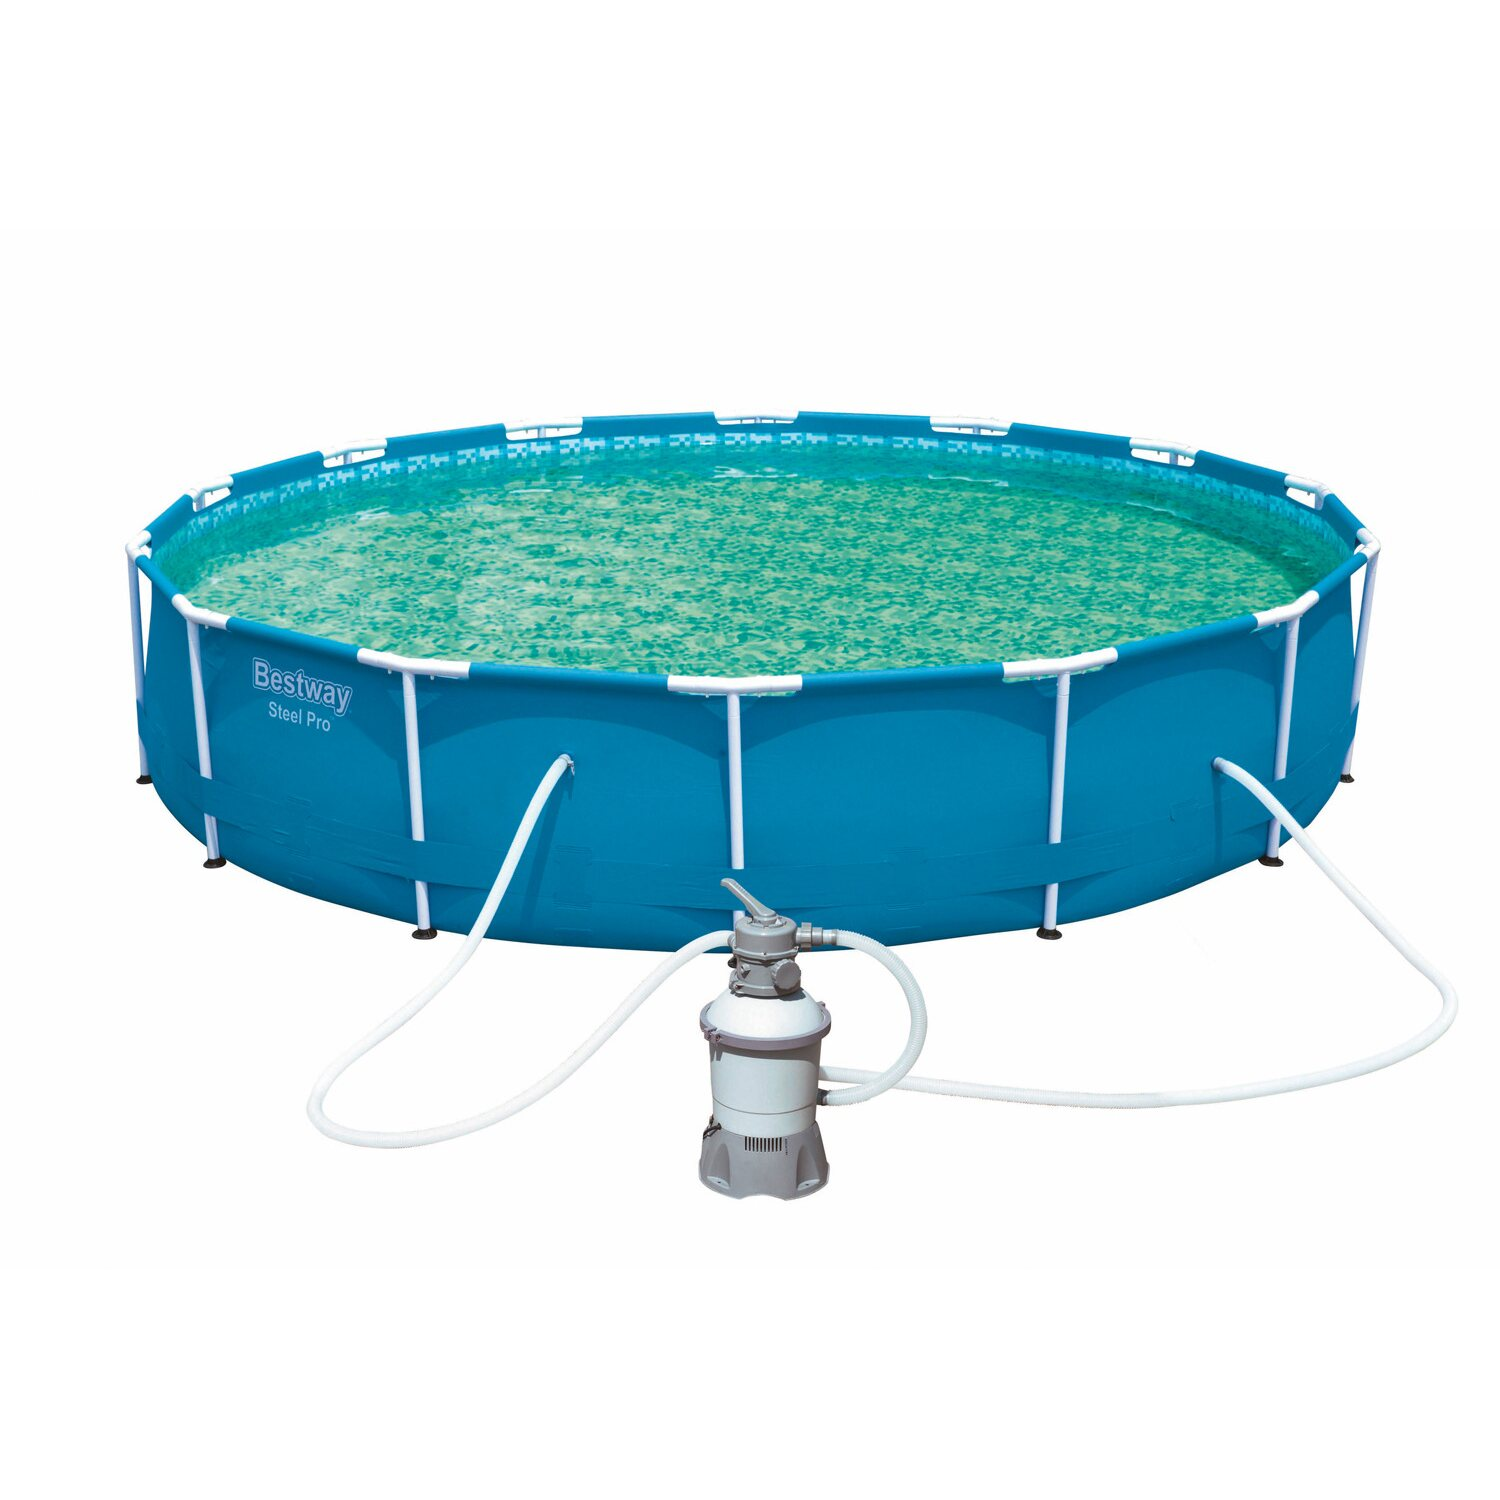 Bestway steel pro frame pool set 427 cm x 84 cm for Bestway pool bei obi